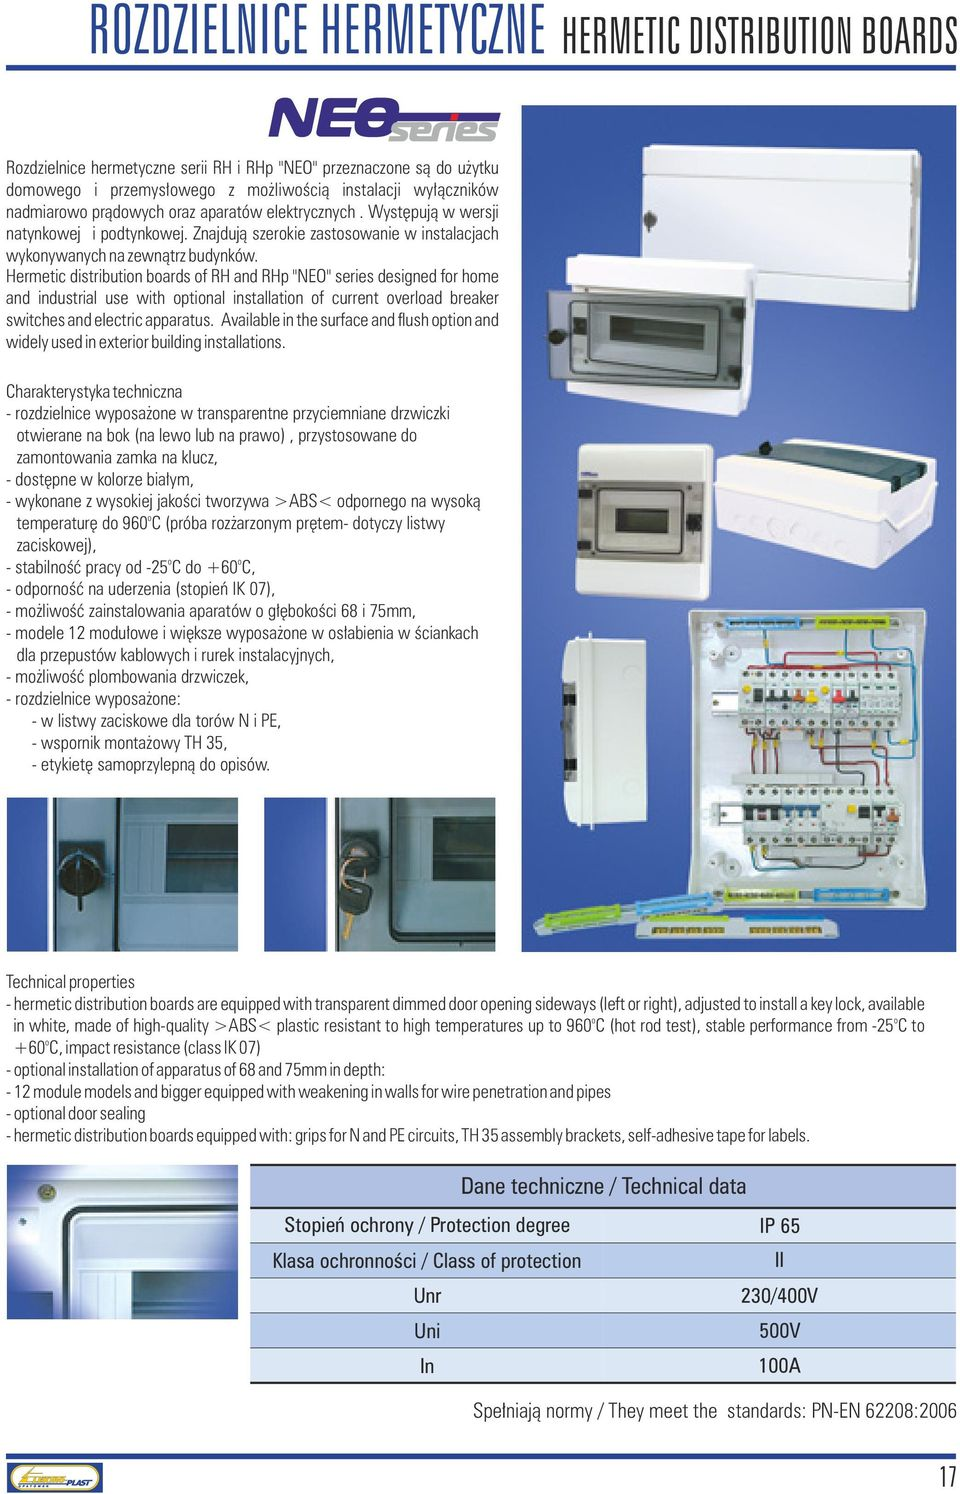 "Hermetic distribution boards of RH and RHp ""NEO"" series designed for home and industrial use with optional installation of current overload breaker switches and electric apparatus."